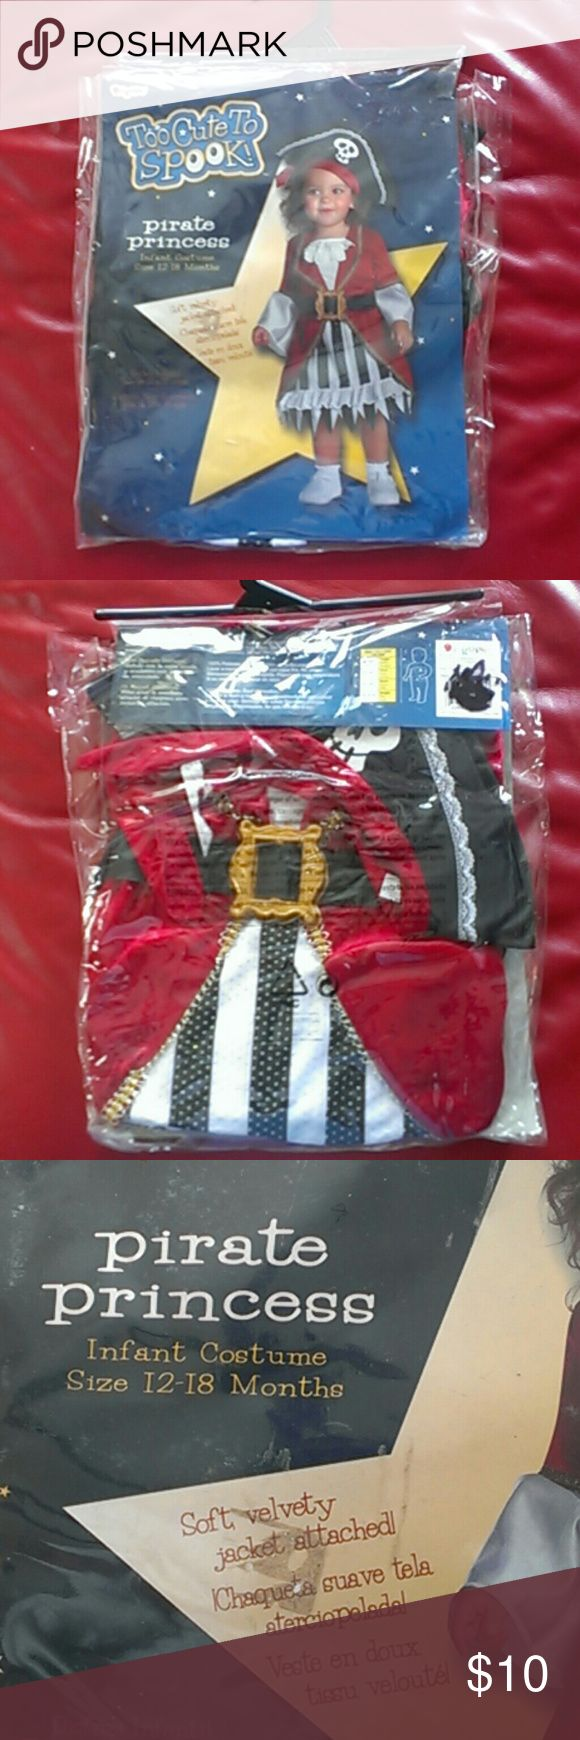 Costume Pirate Princess Costume Pirate Princess, infant costume size 12-18 months, soft velvety jacket attached, veste en doux, colors red, white, black,brand new Pirate Princess Costumes Halloween